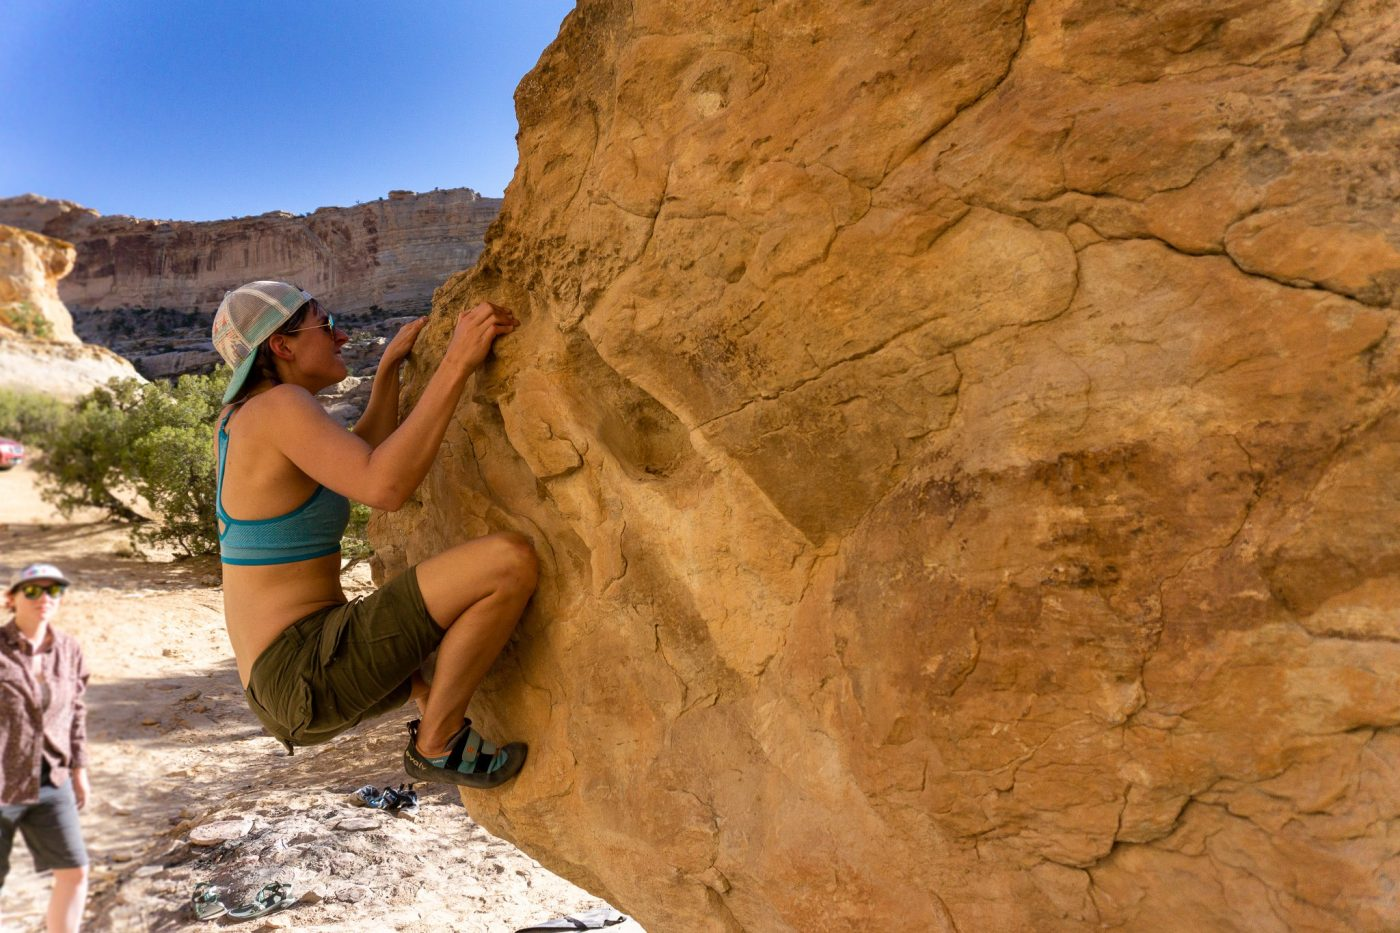 backpacking tips for woman